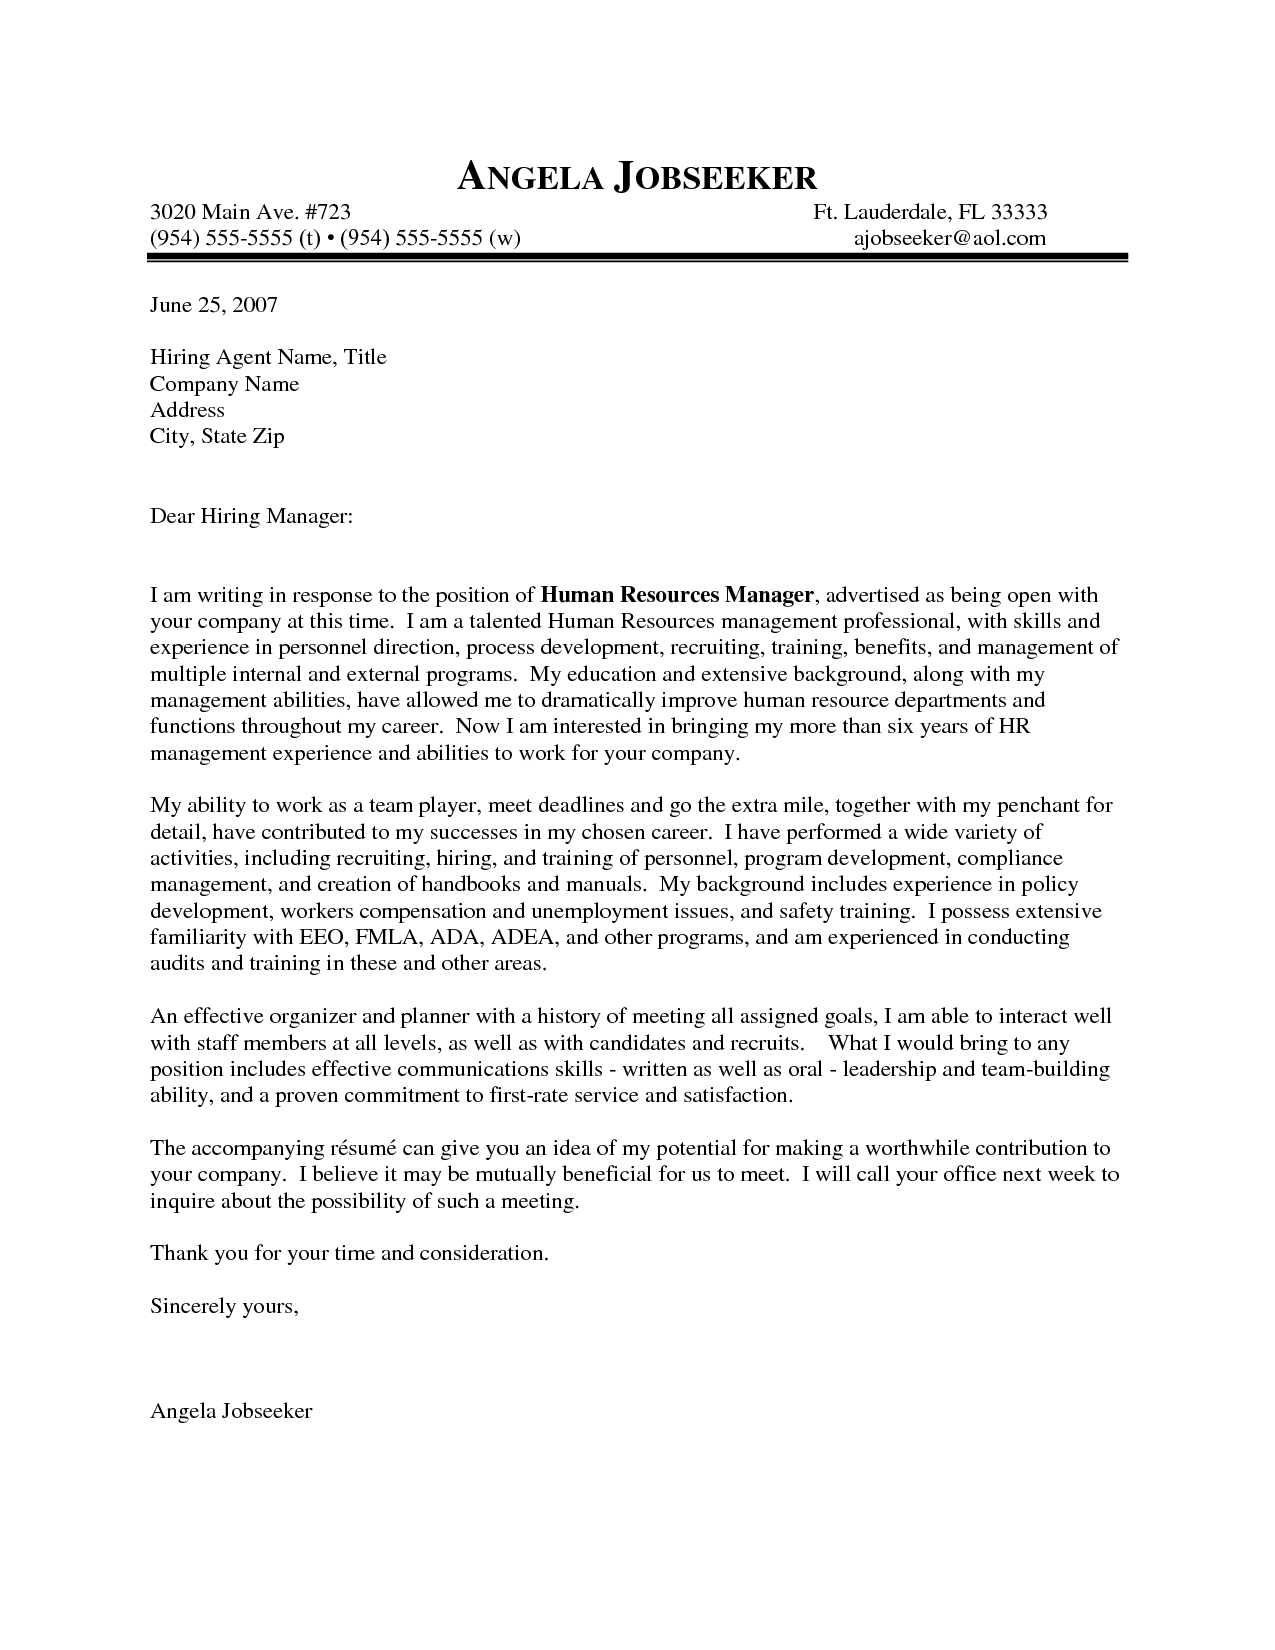 Manager Cover Letter Fascinating Outstanding Cover Letter Examples  Hr Manager Cover Letter Inspiration Design